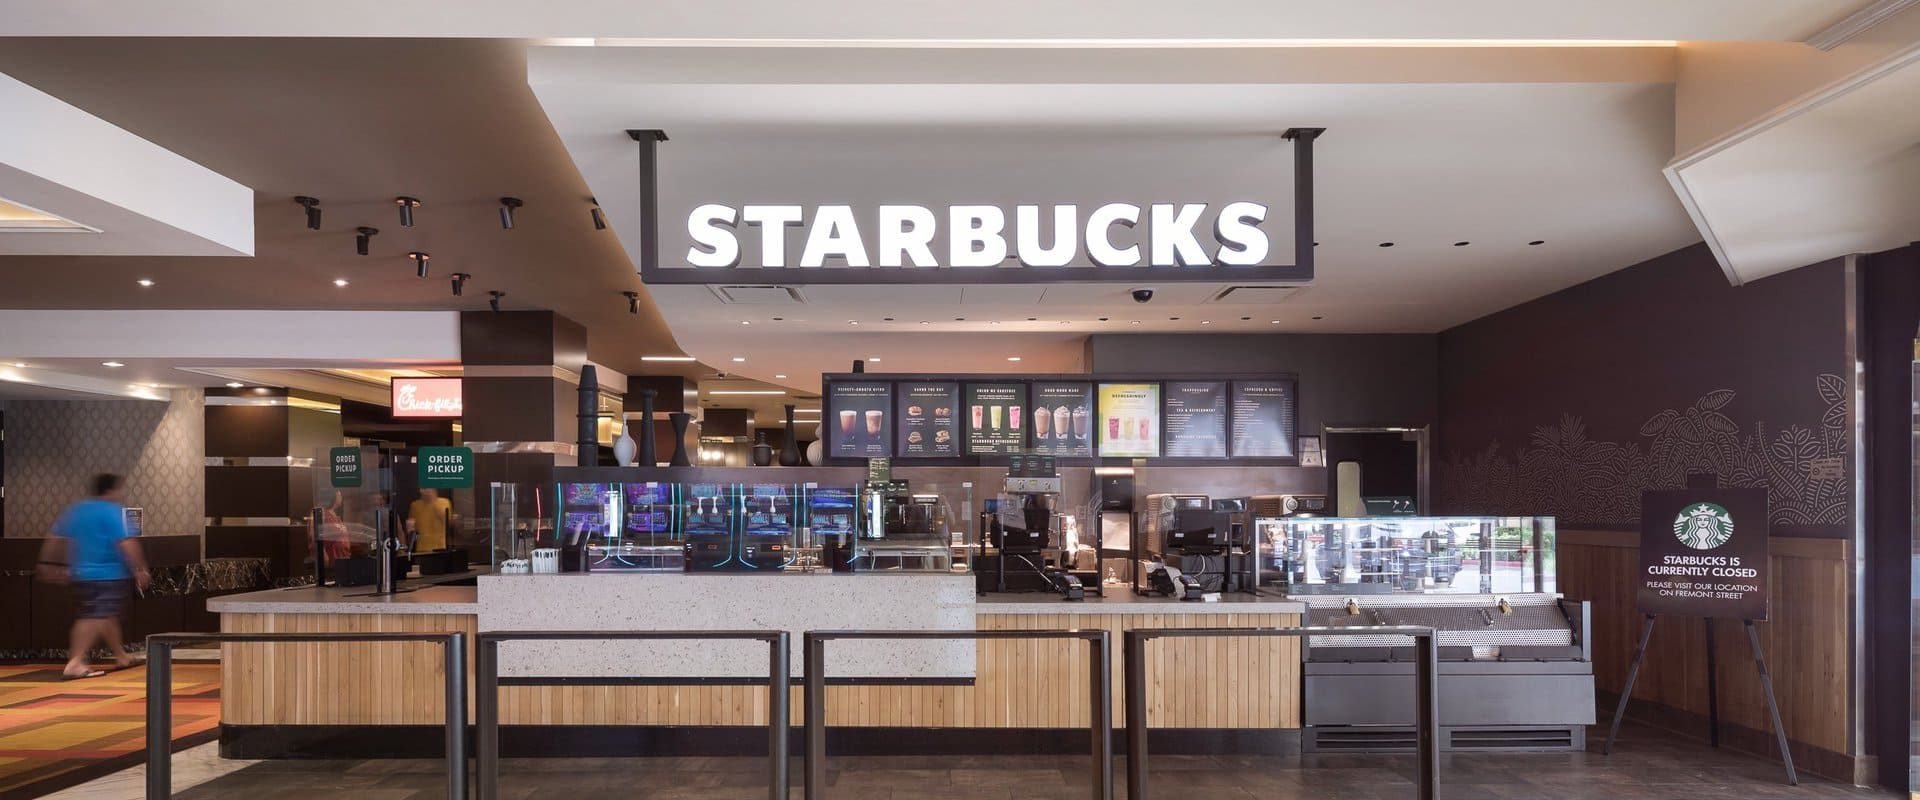 The Starbucks in the Golden Nugget in downtown Las Vegas, NV.